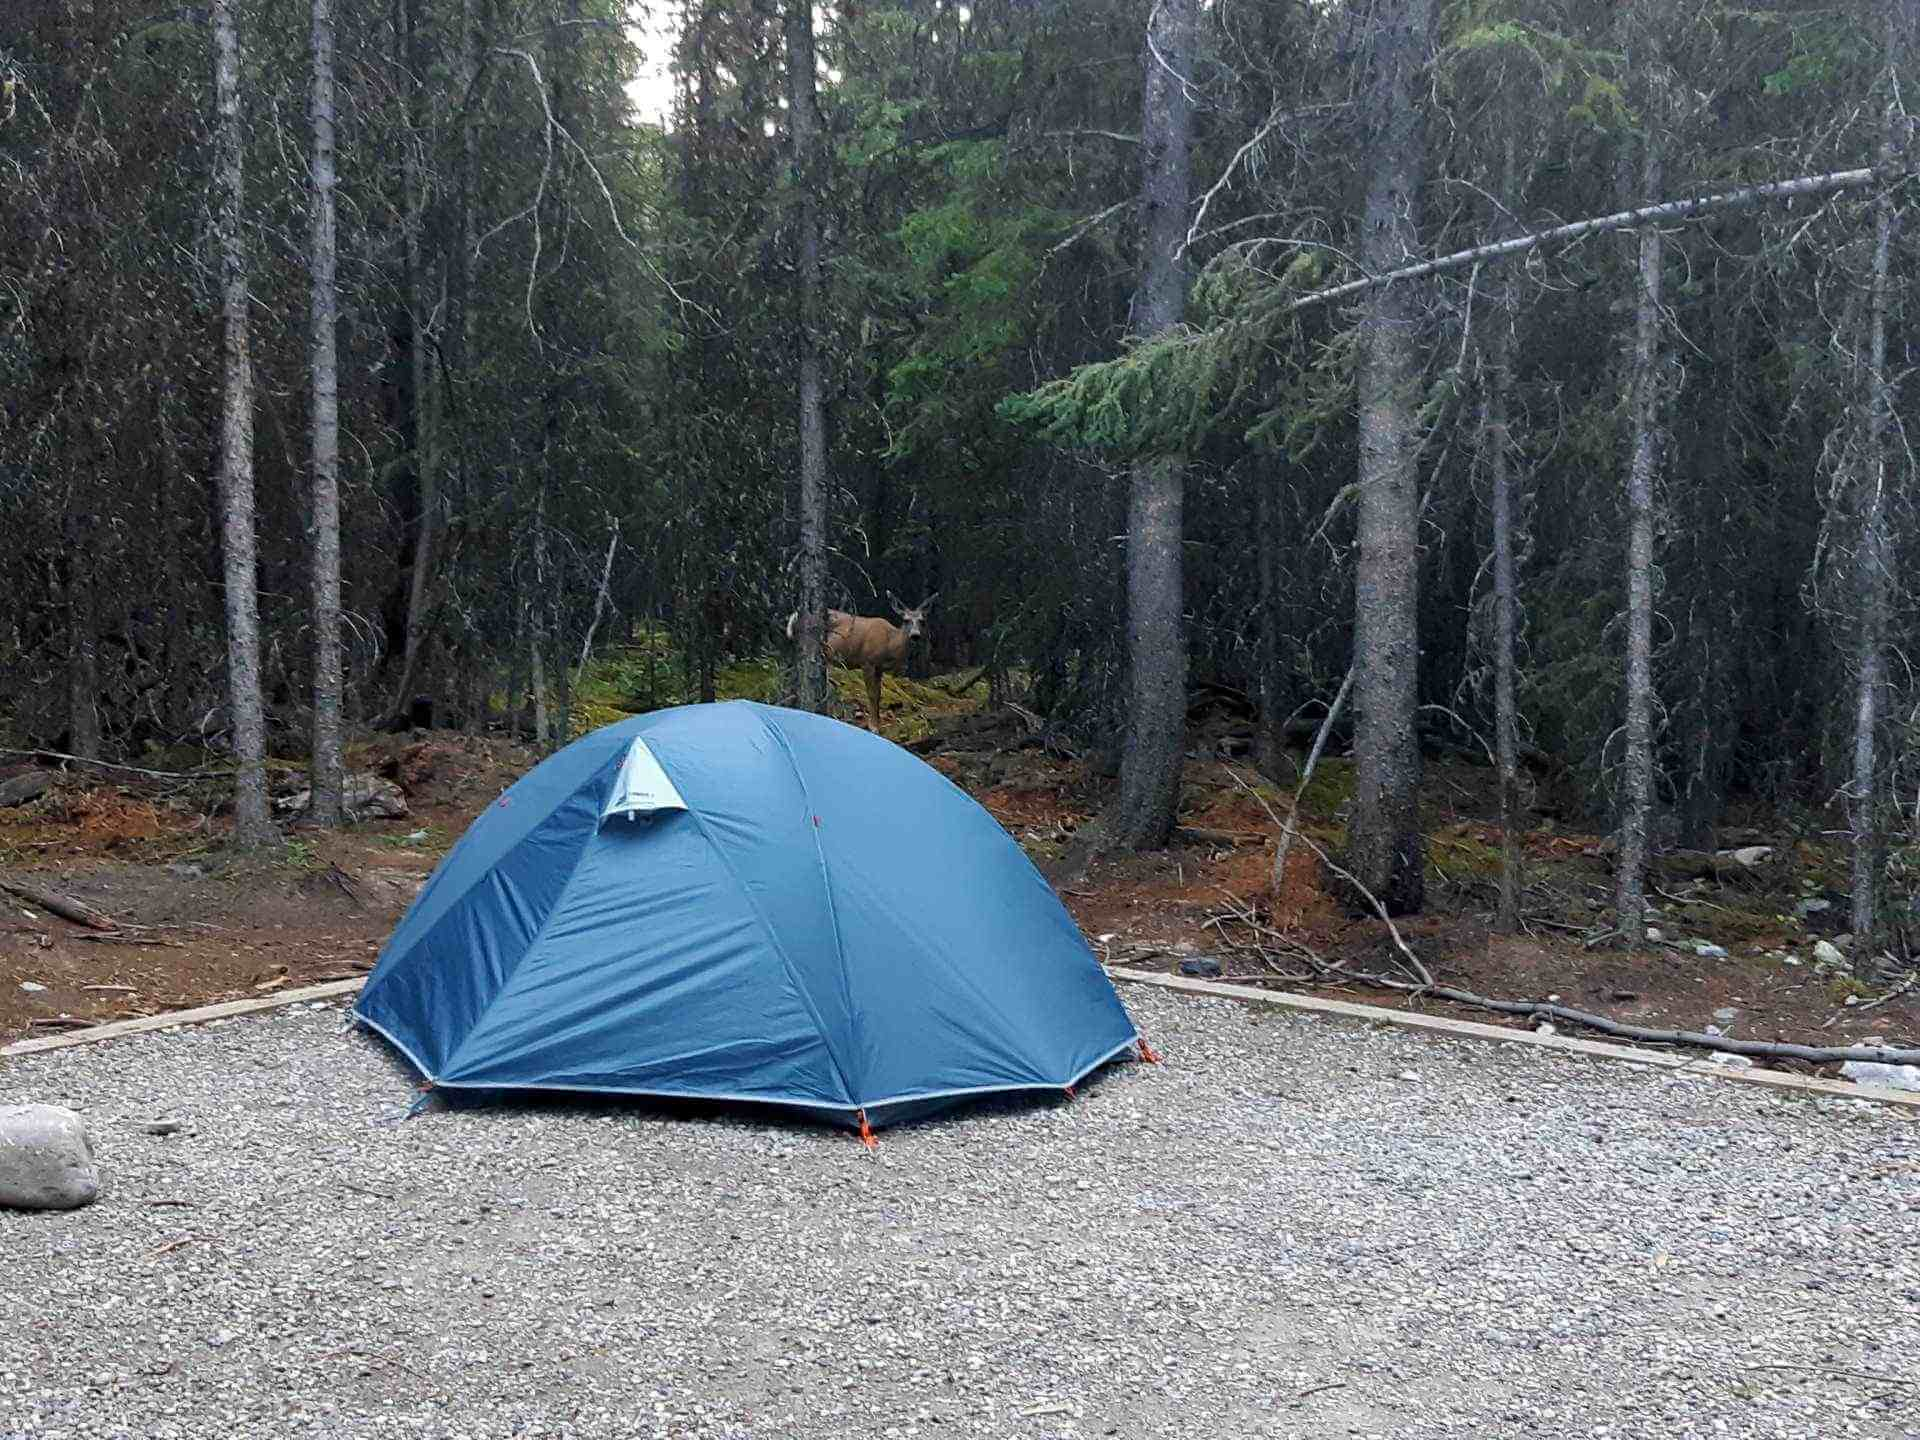 MEC Camper 2: One Tent for Backpacking and Car Camping?